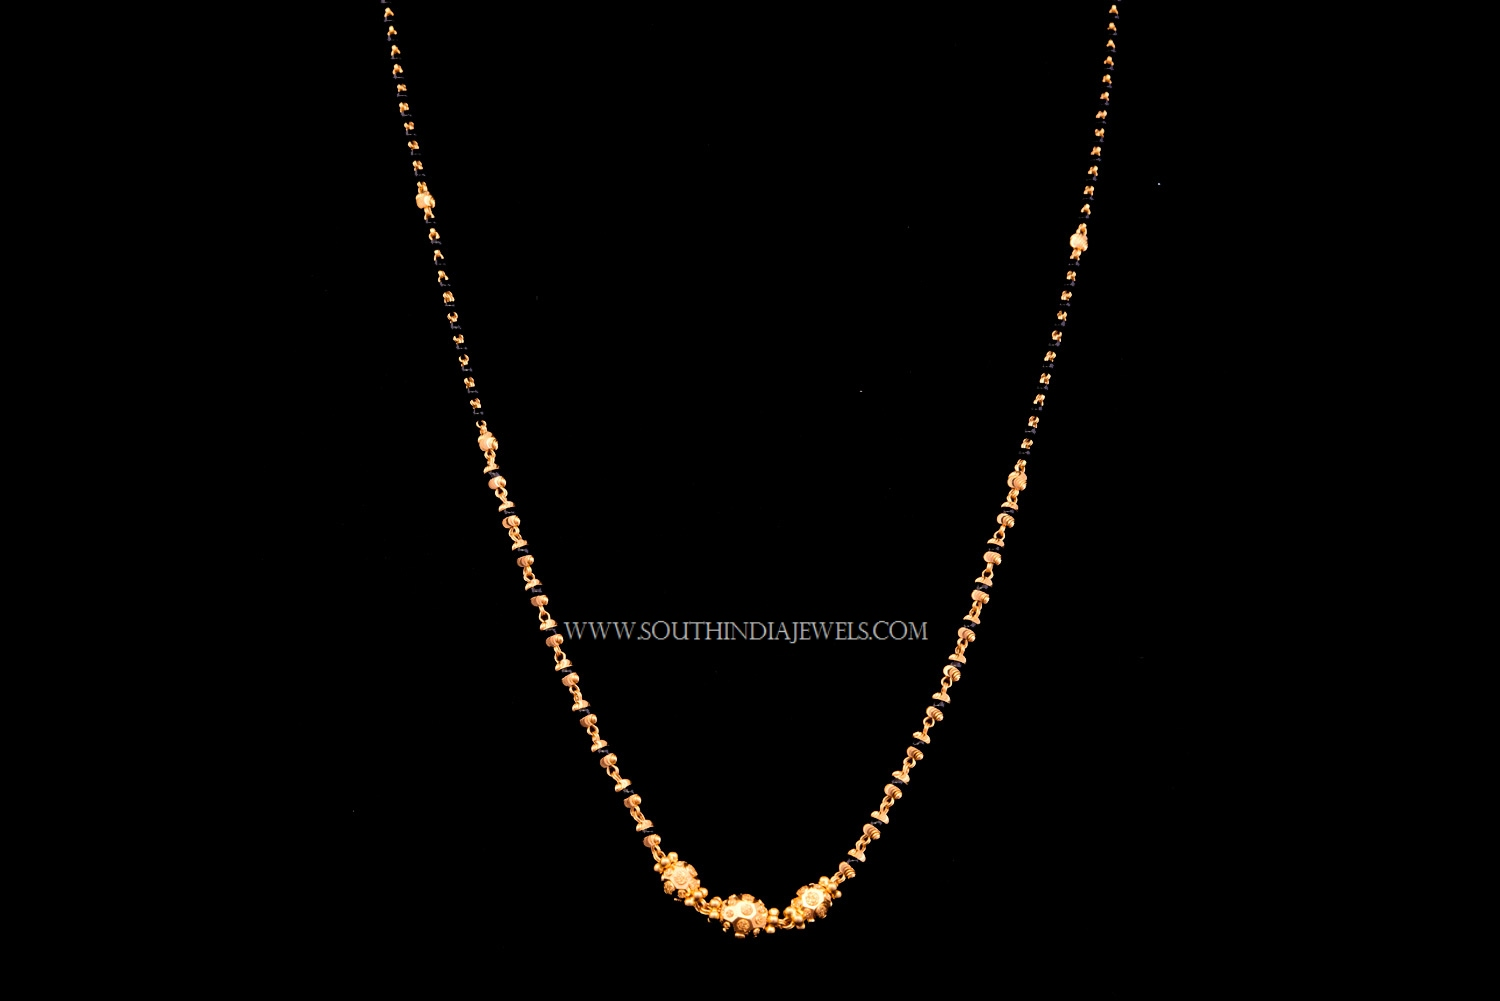 22k gold simple gold necklace design for inquiries please contact the - Simple 22k Gold Chain Necklace South India Jewels